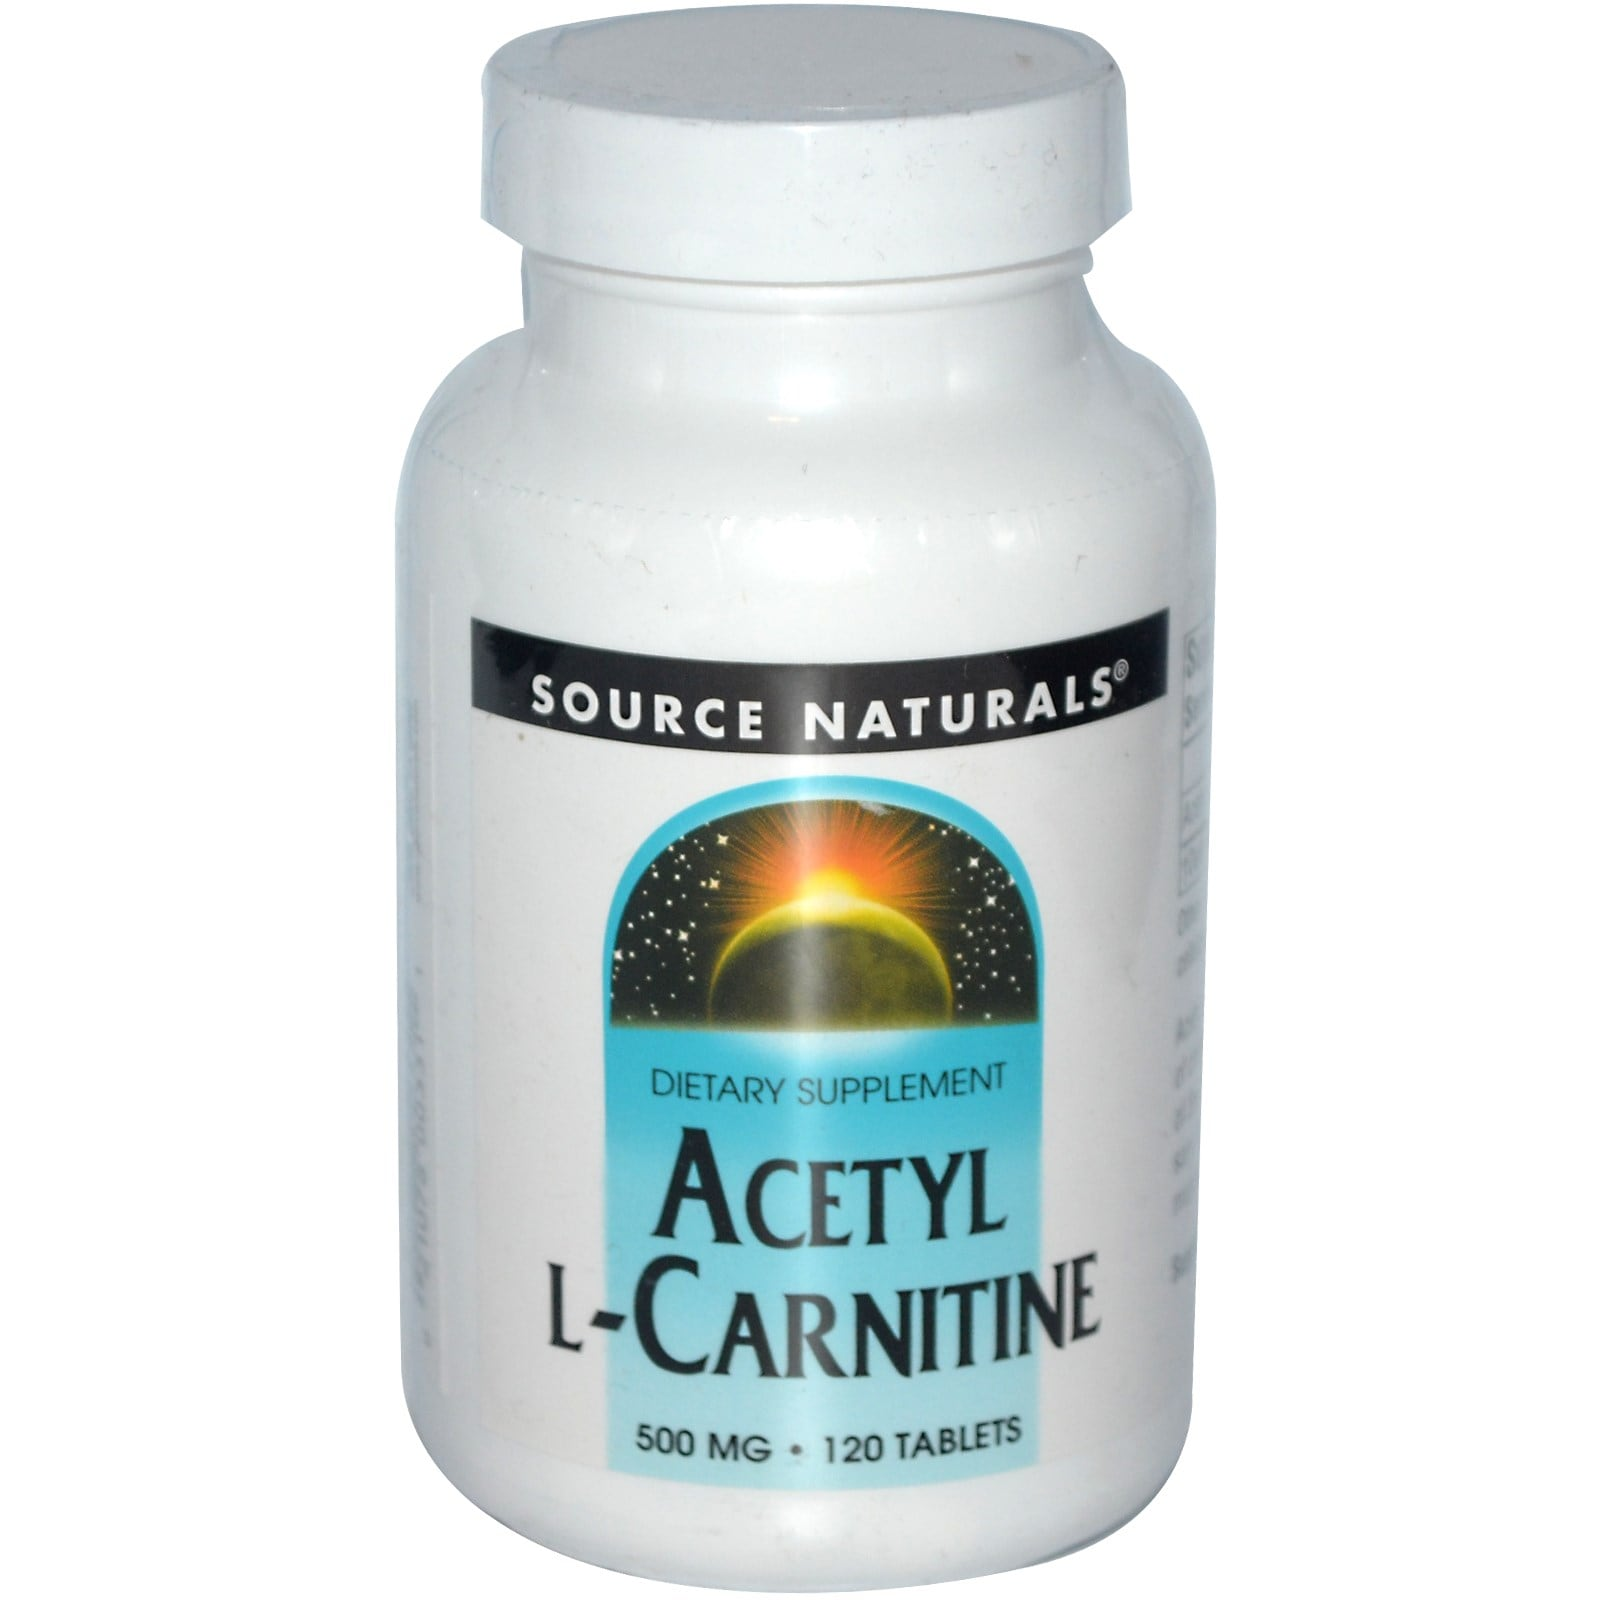 Nootropic Acetyl-L-Carnitine